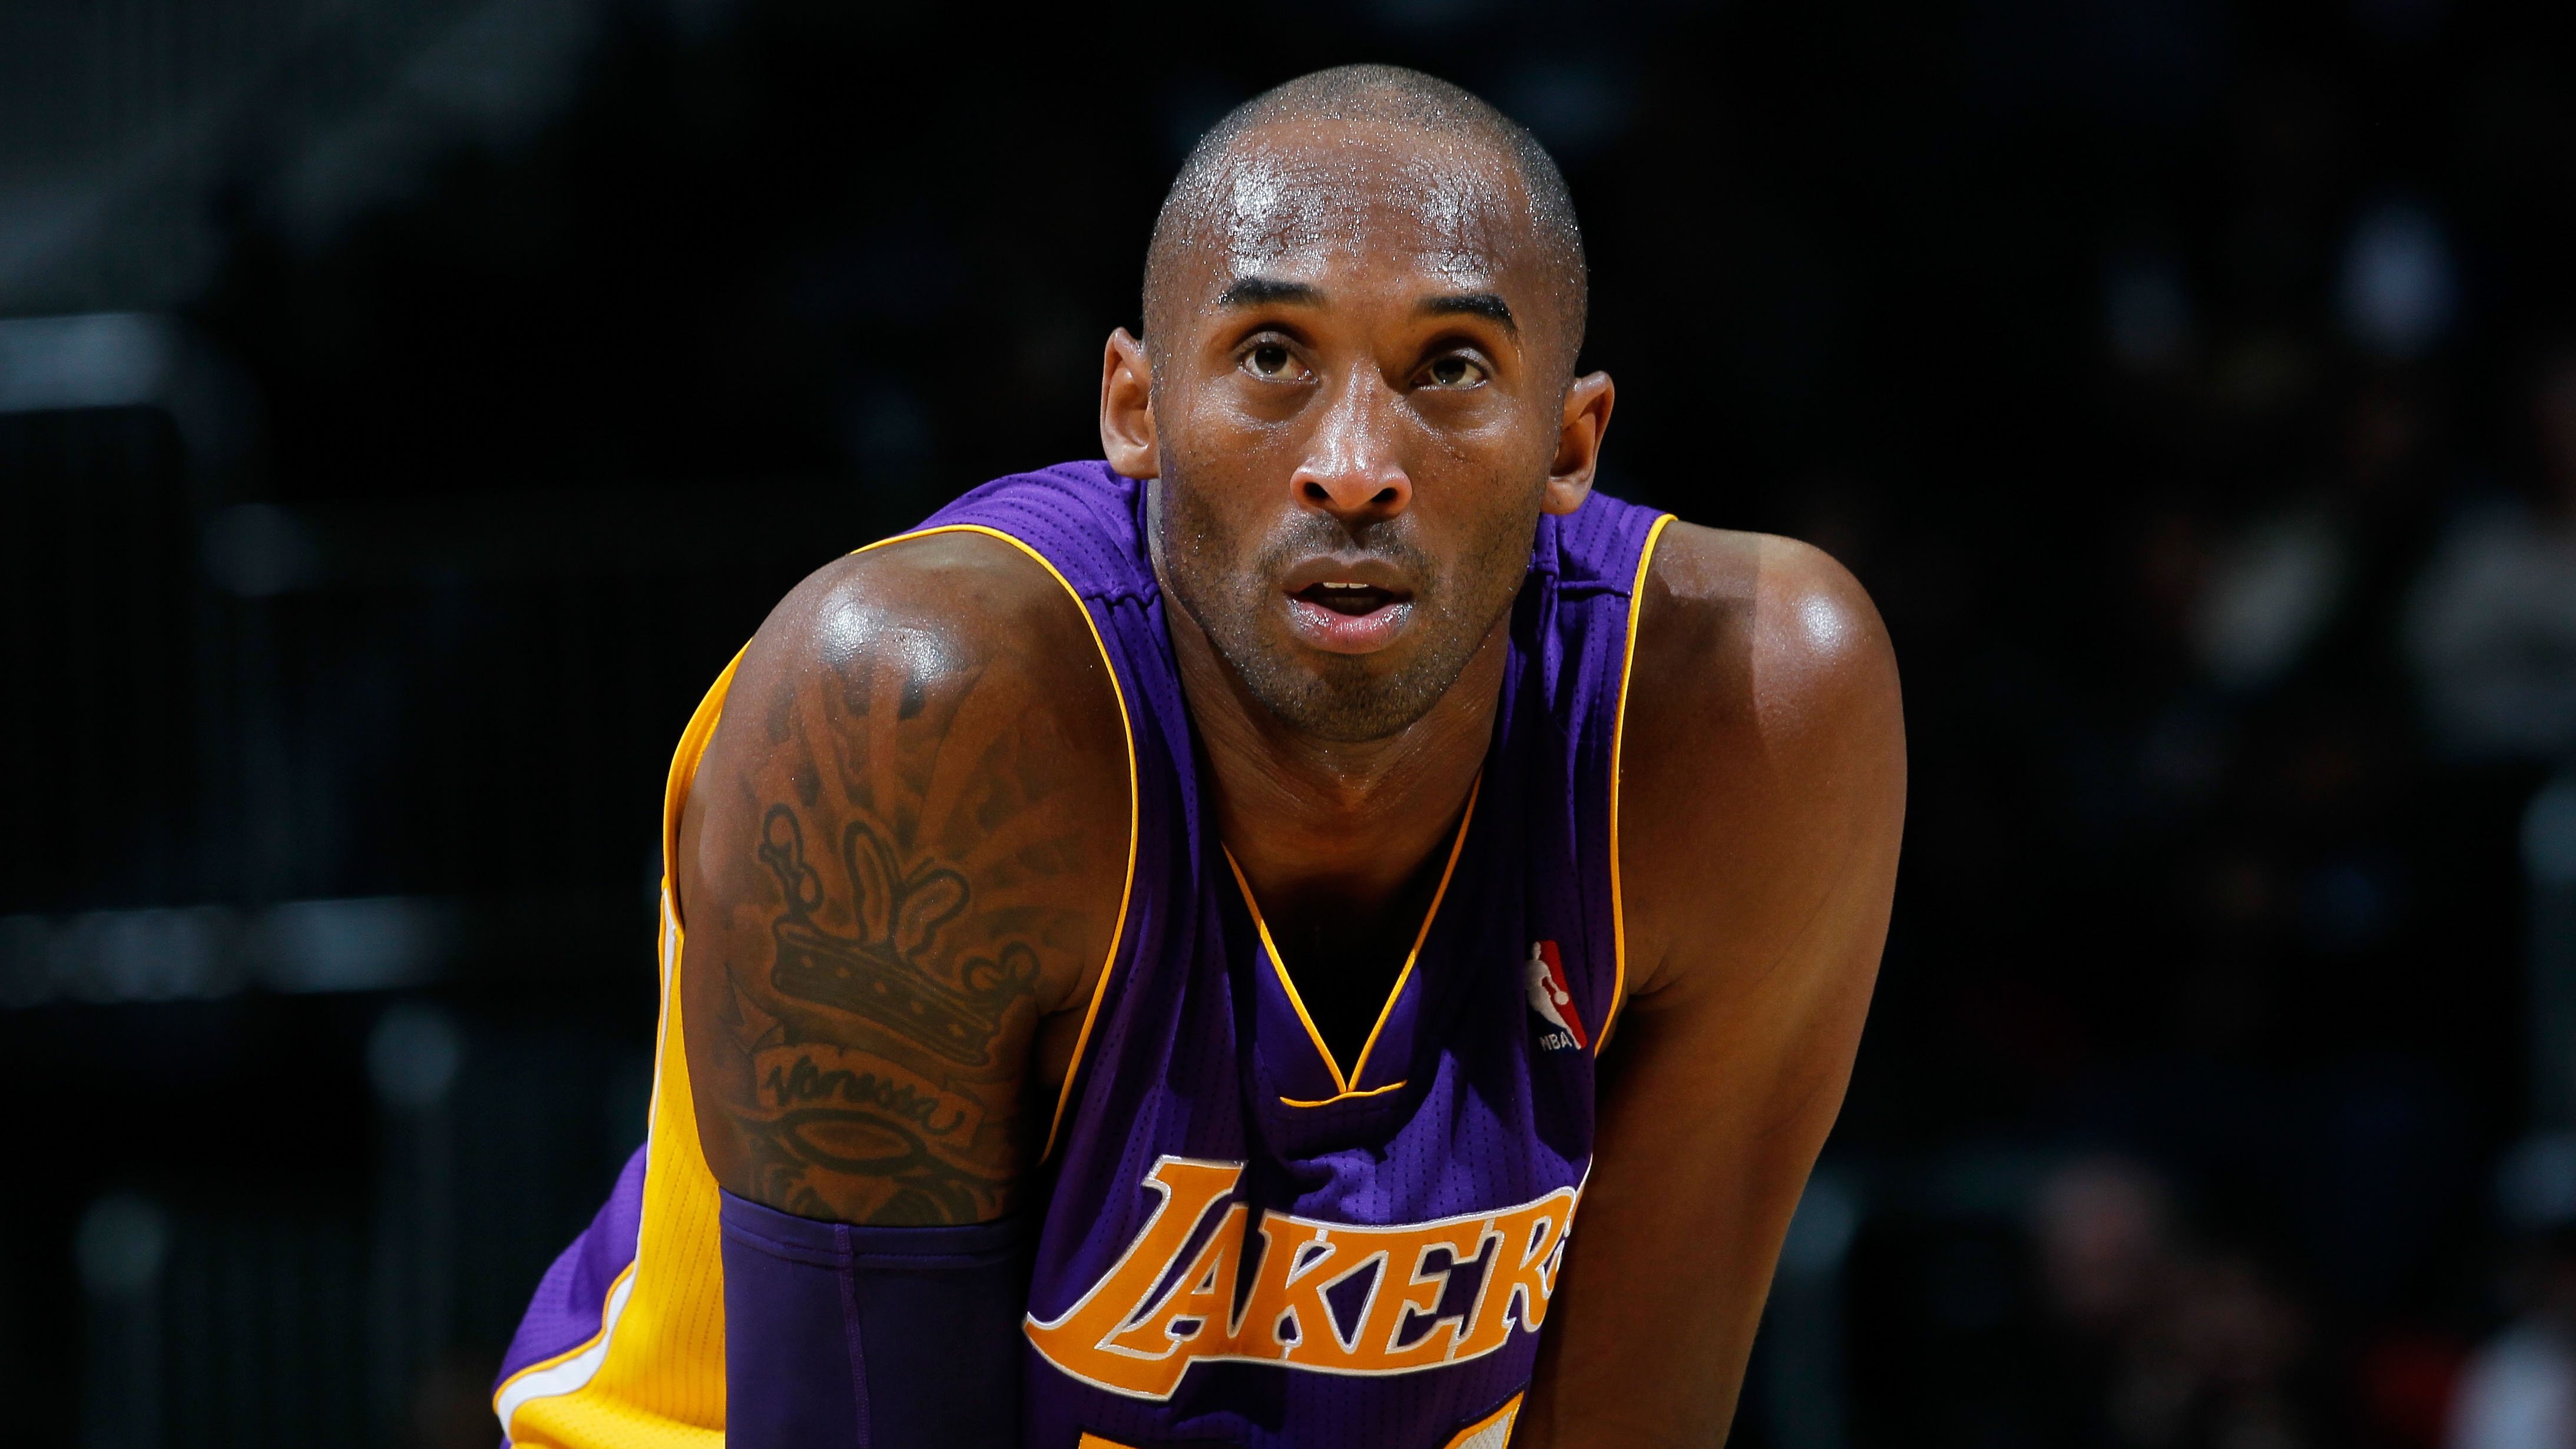 Los Angeles Lakers' Kobe Bryant plans to play in all eight